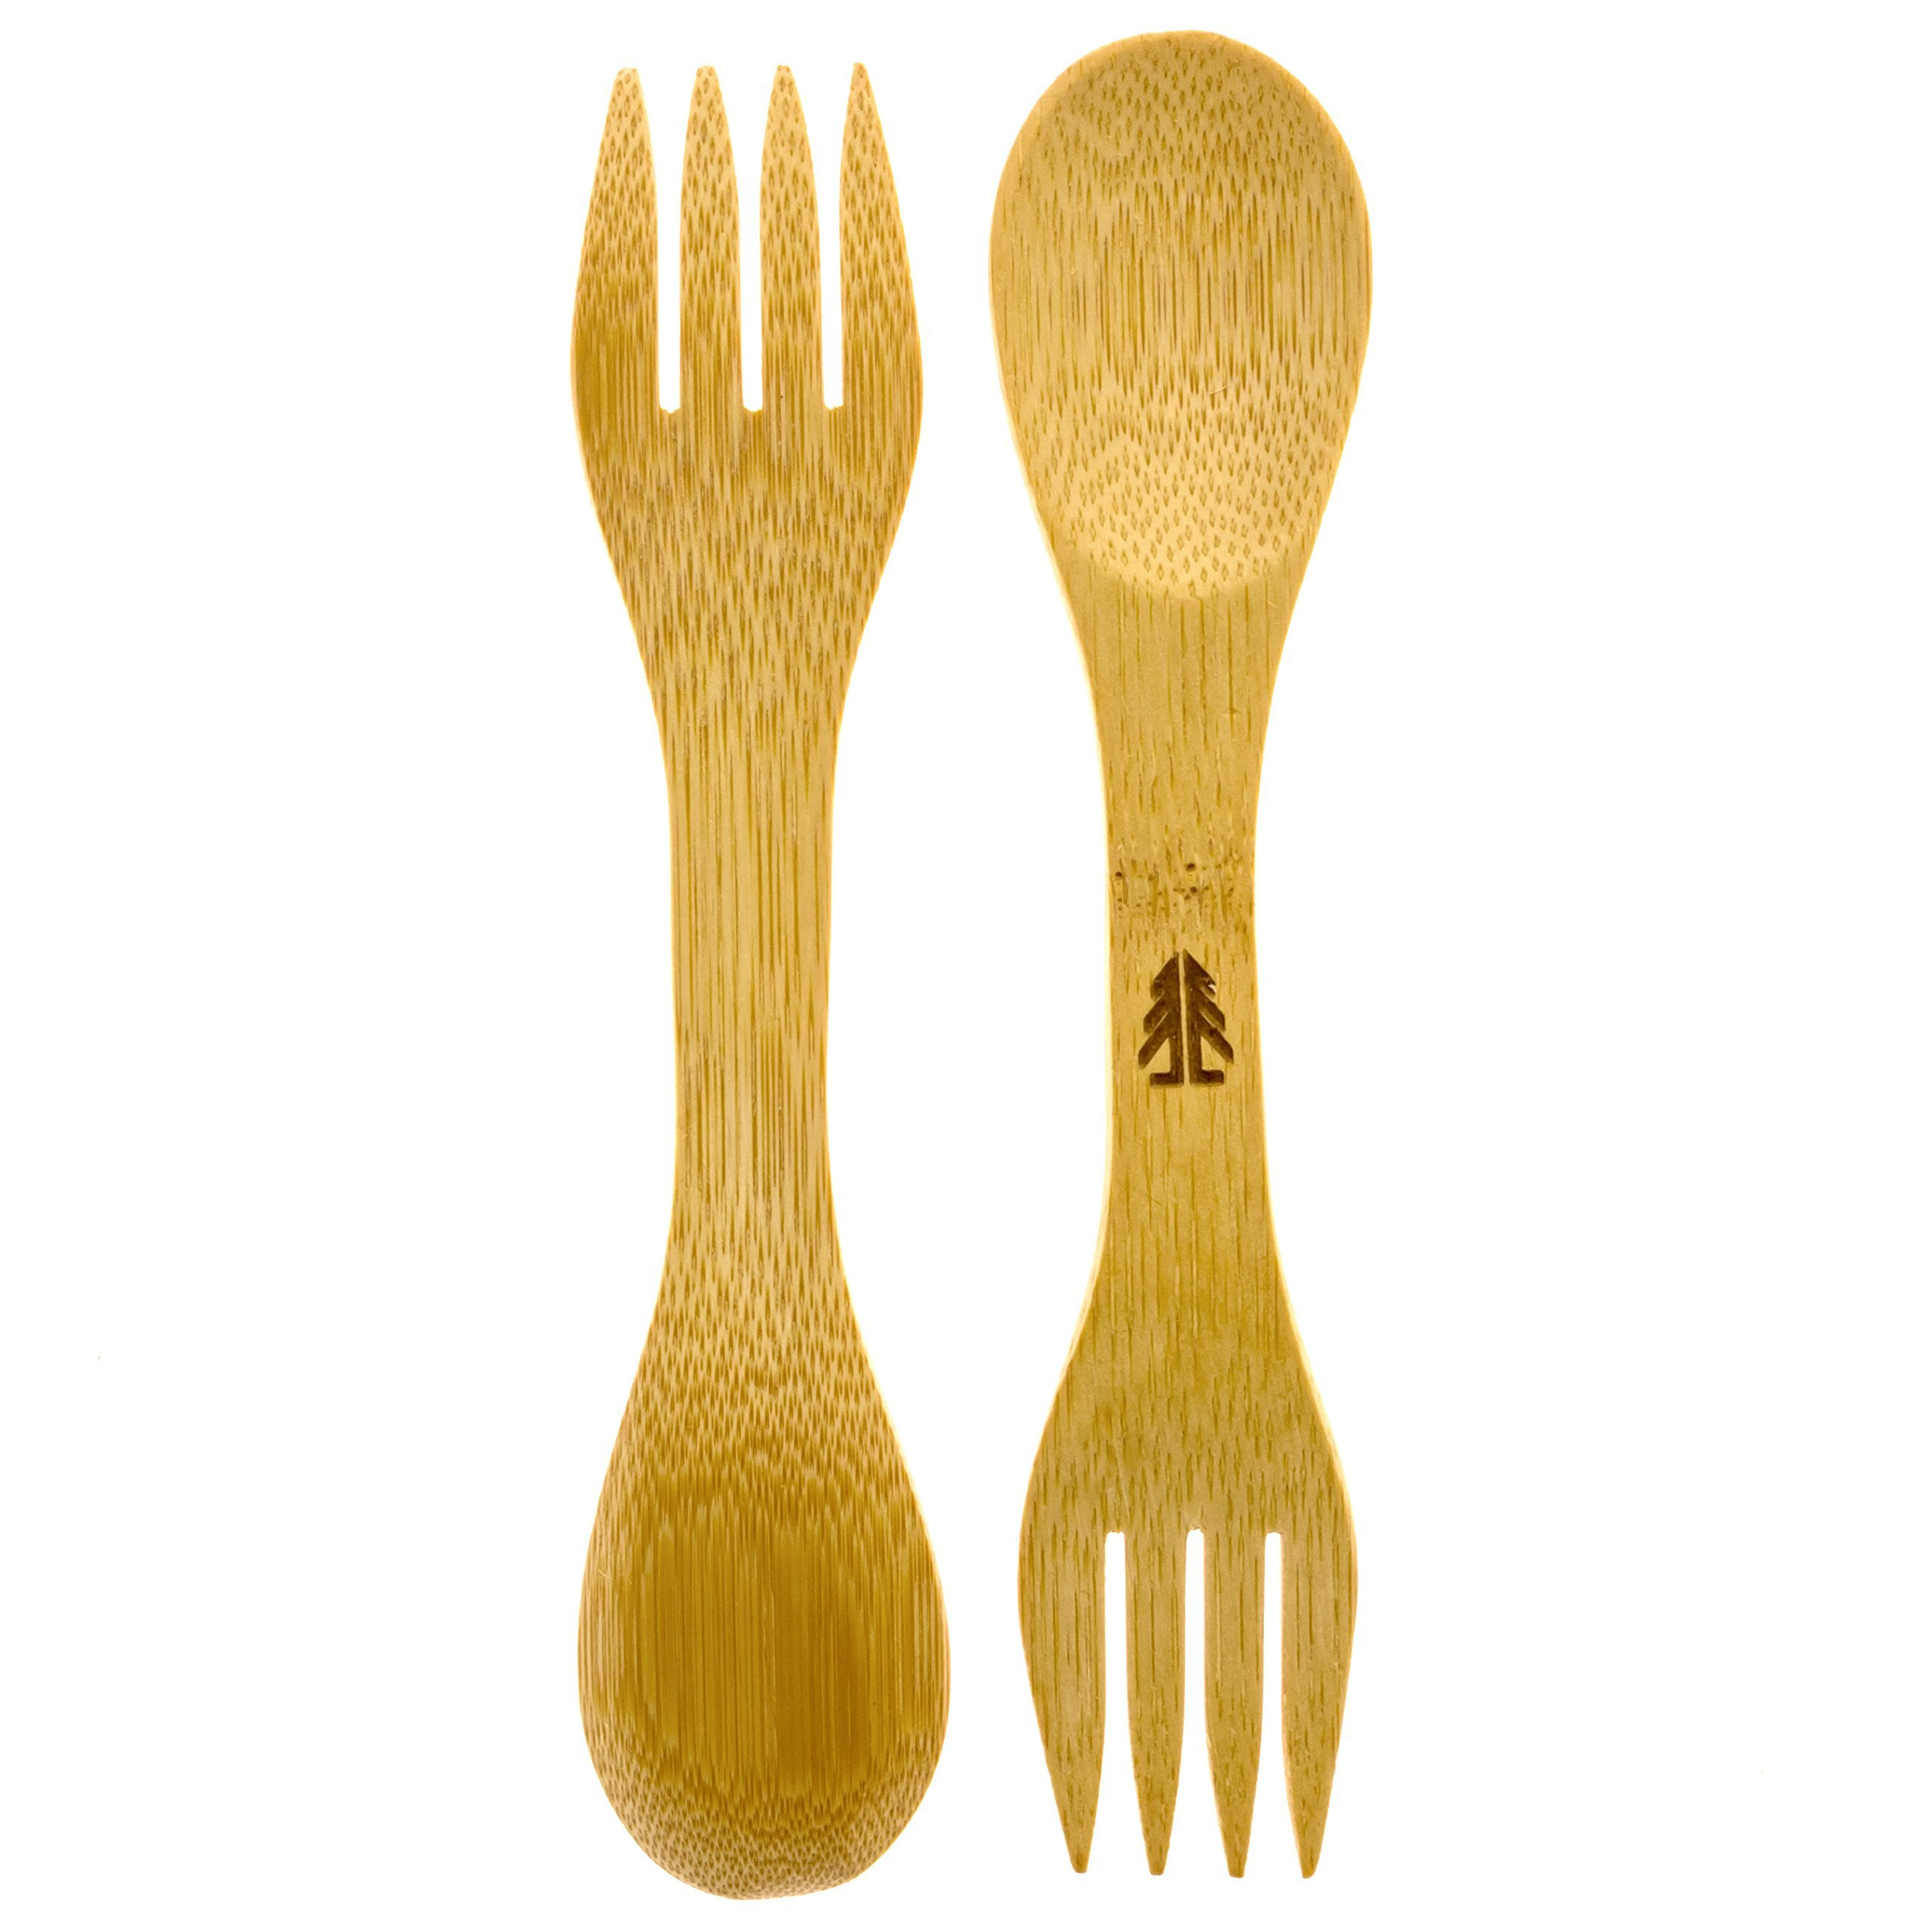 Bamboo Sporks - Pack of 4 - Simply 100% Bamboo Eating Utensils by Forestry Labs